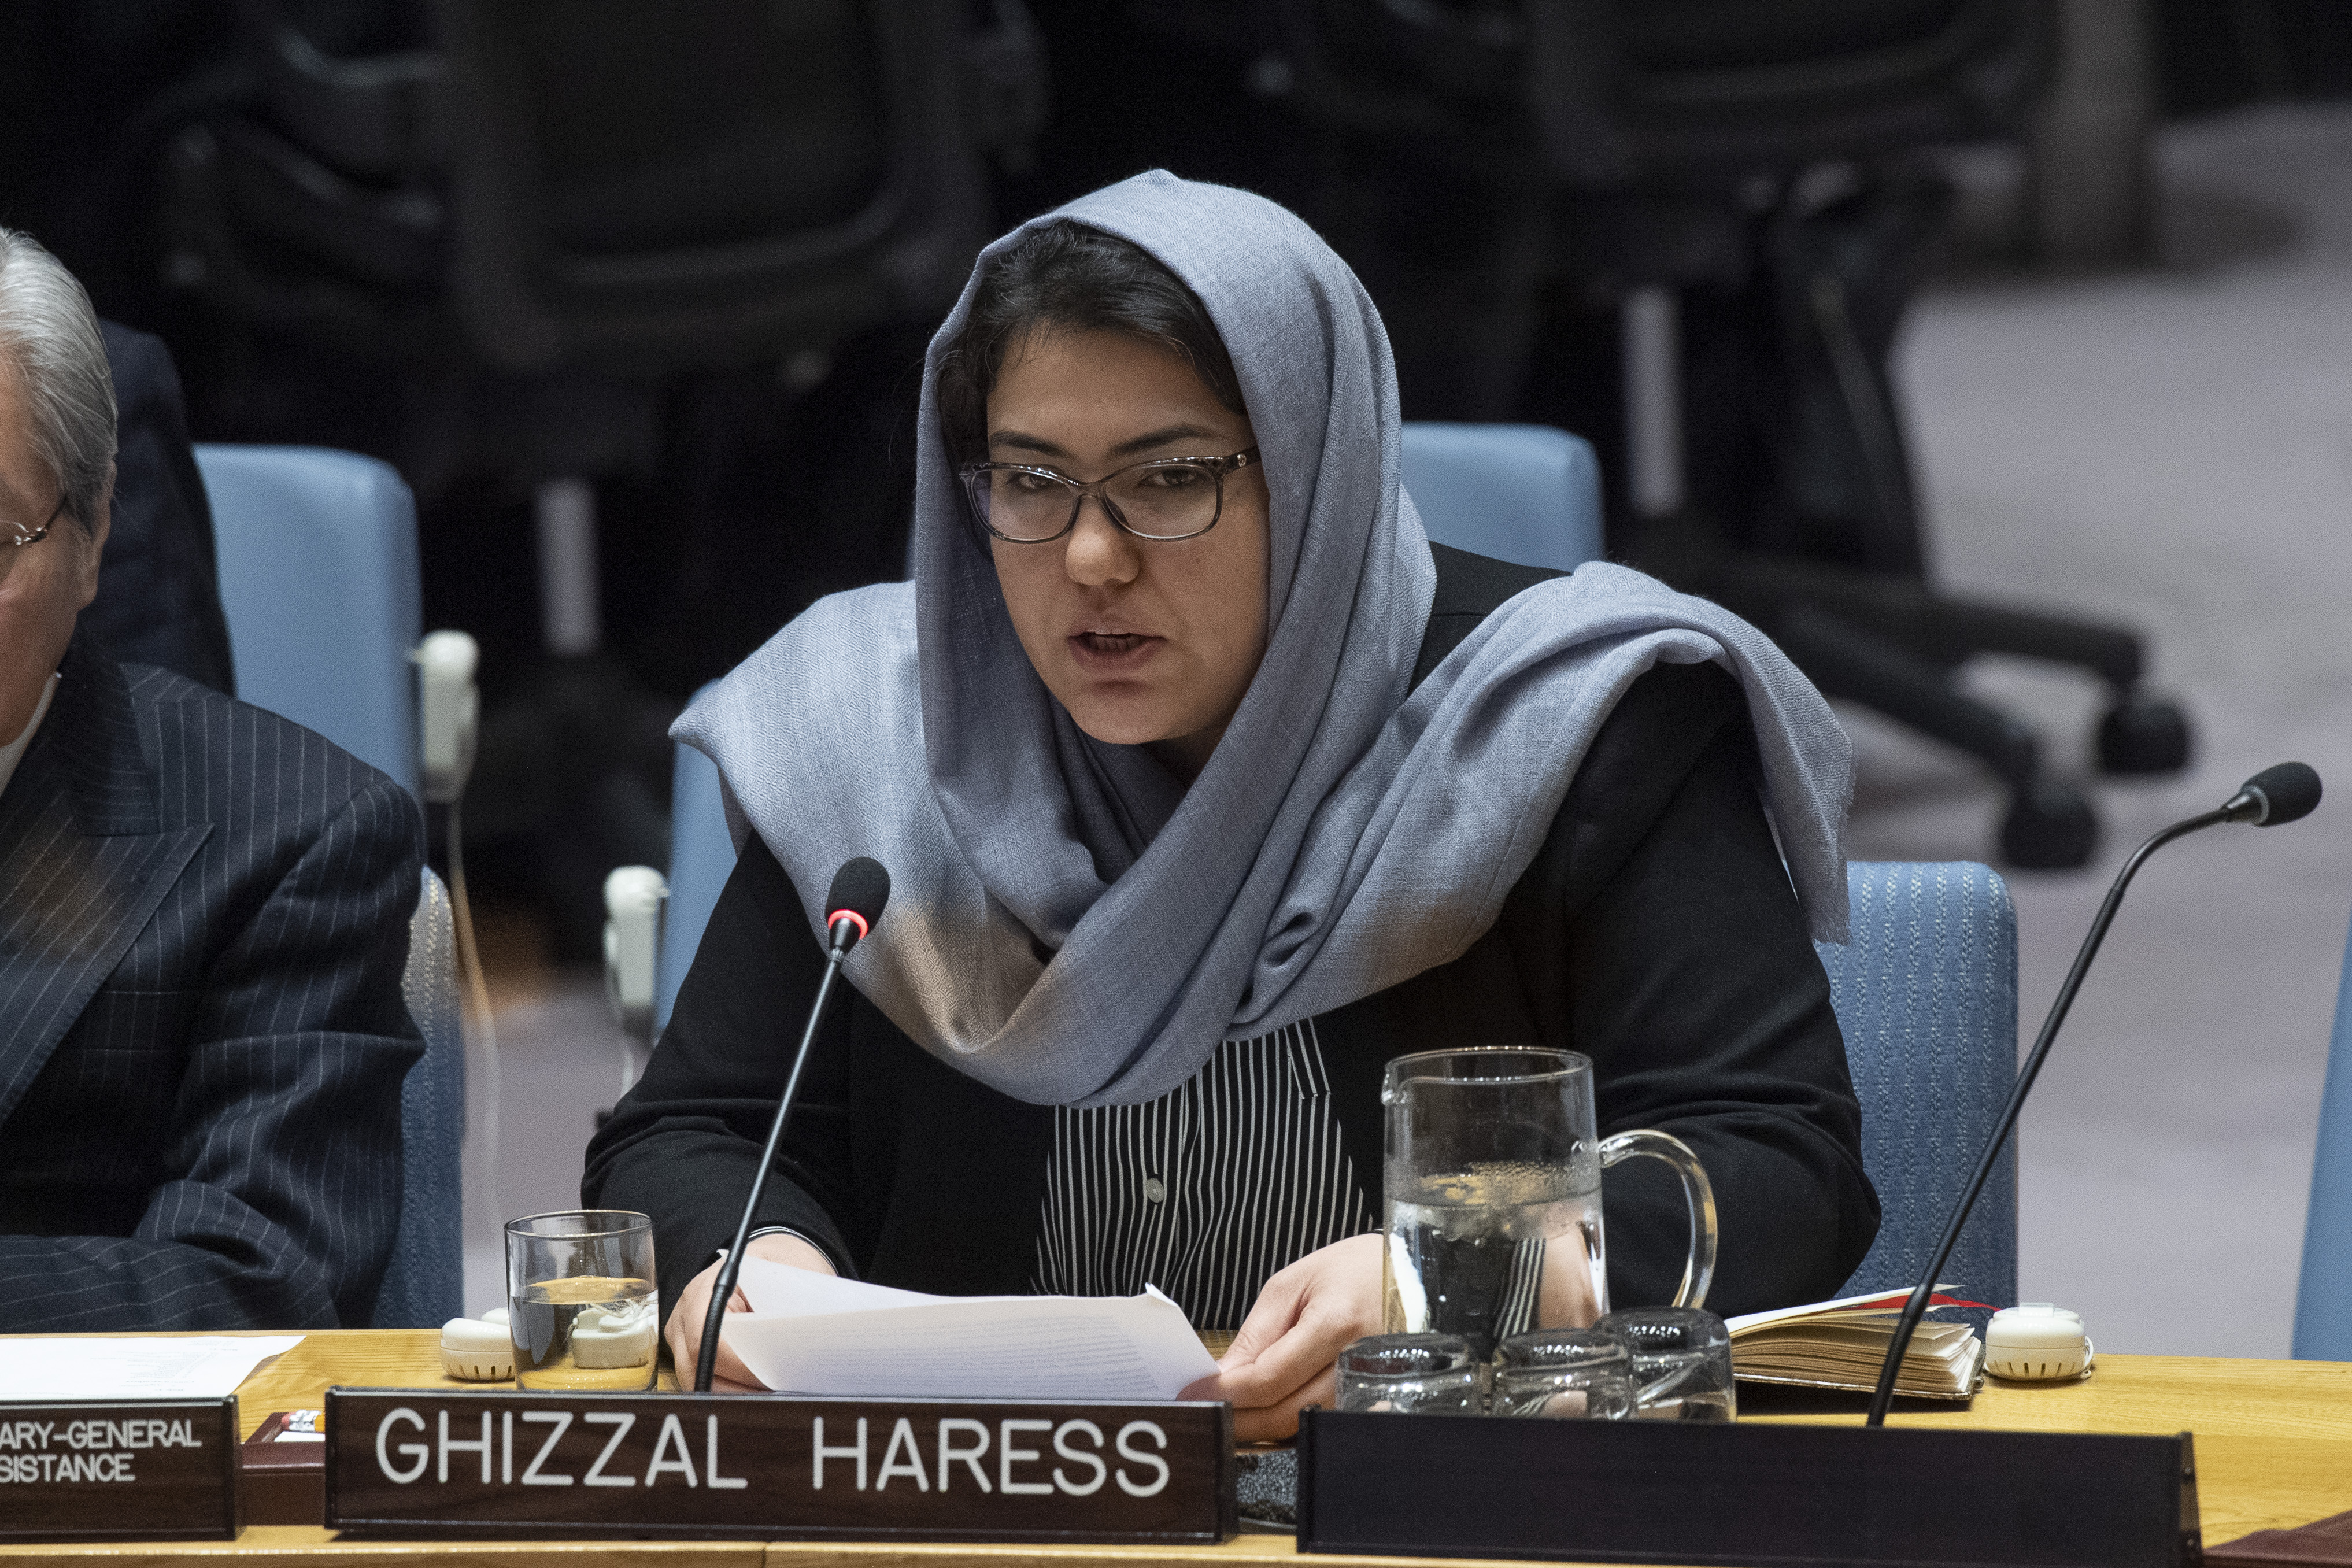 UN Security Council Briefing on Afghanistan by Ghizaal Haress